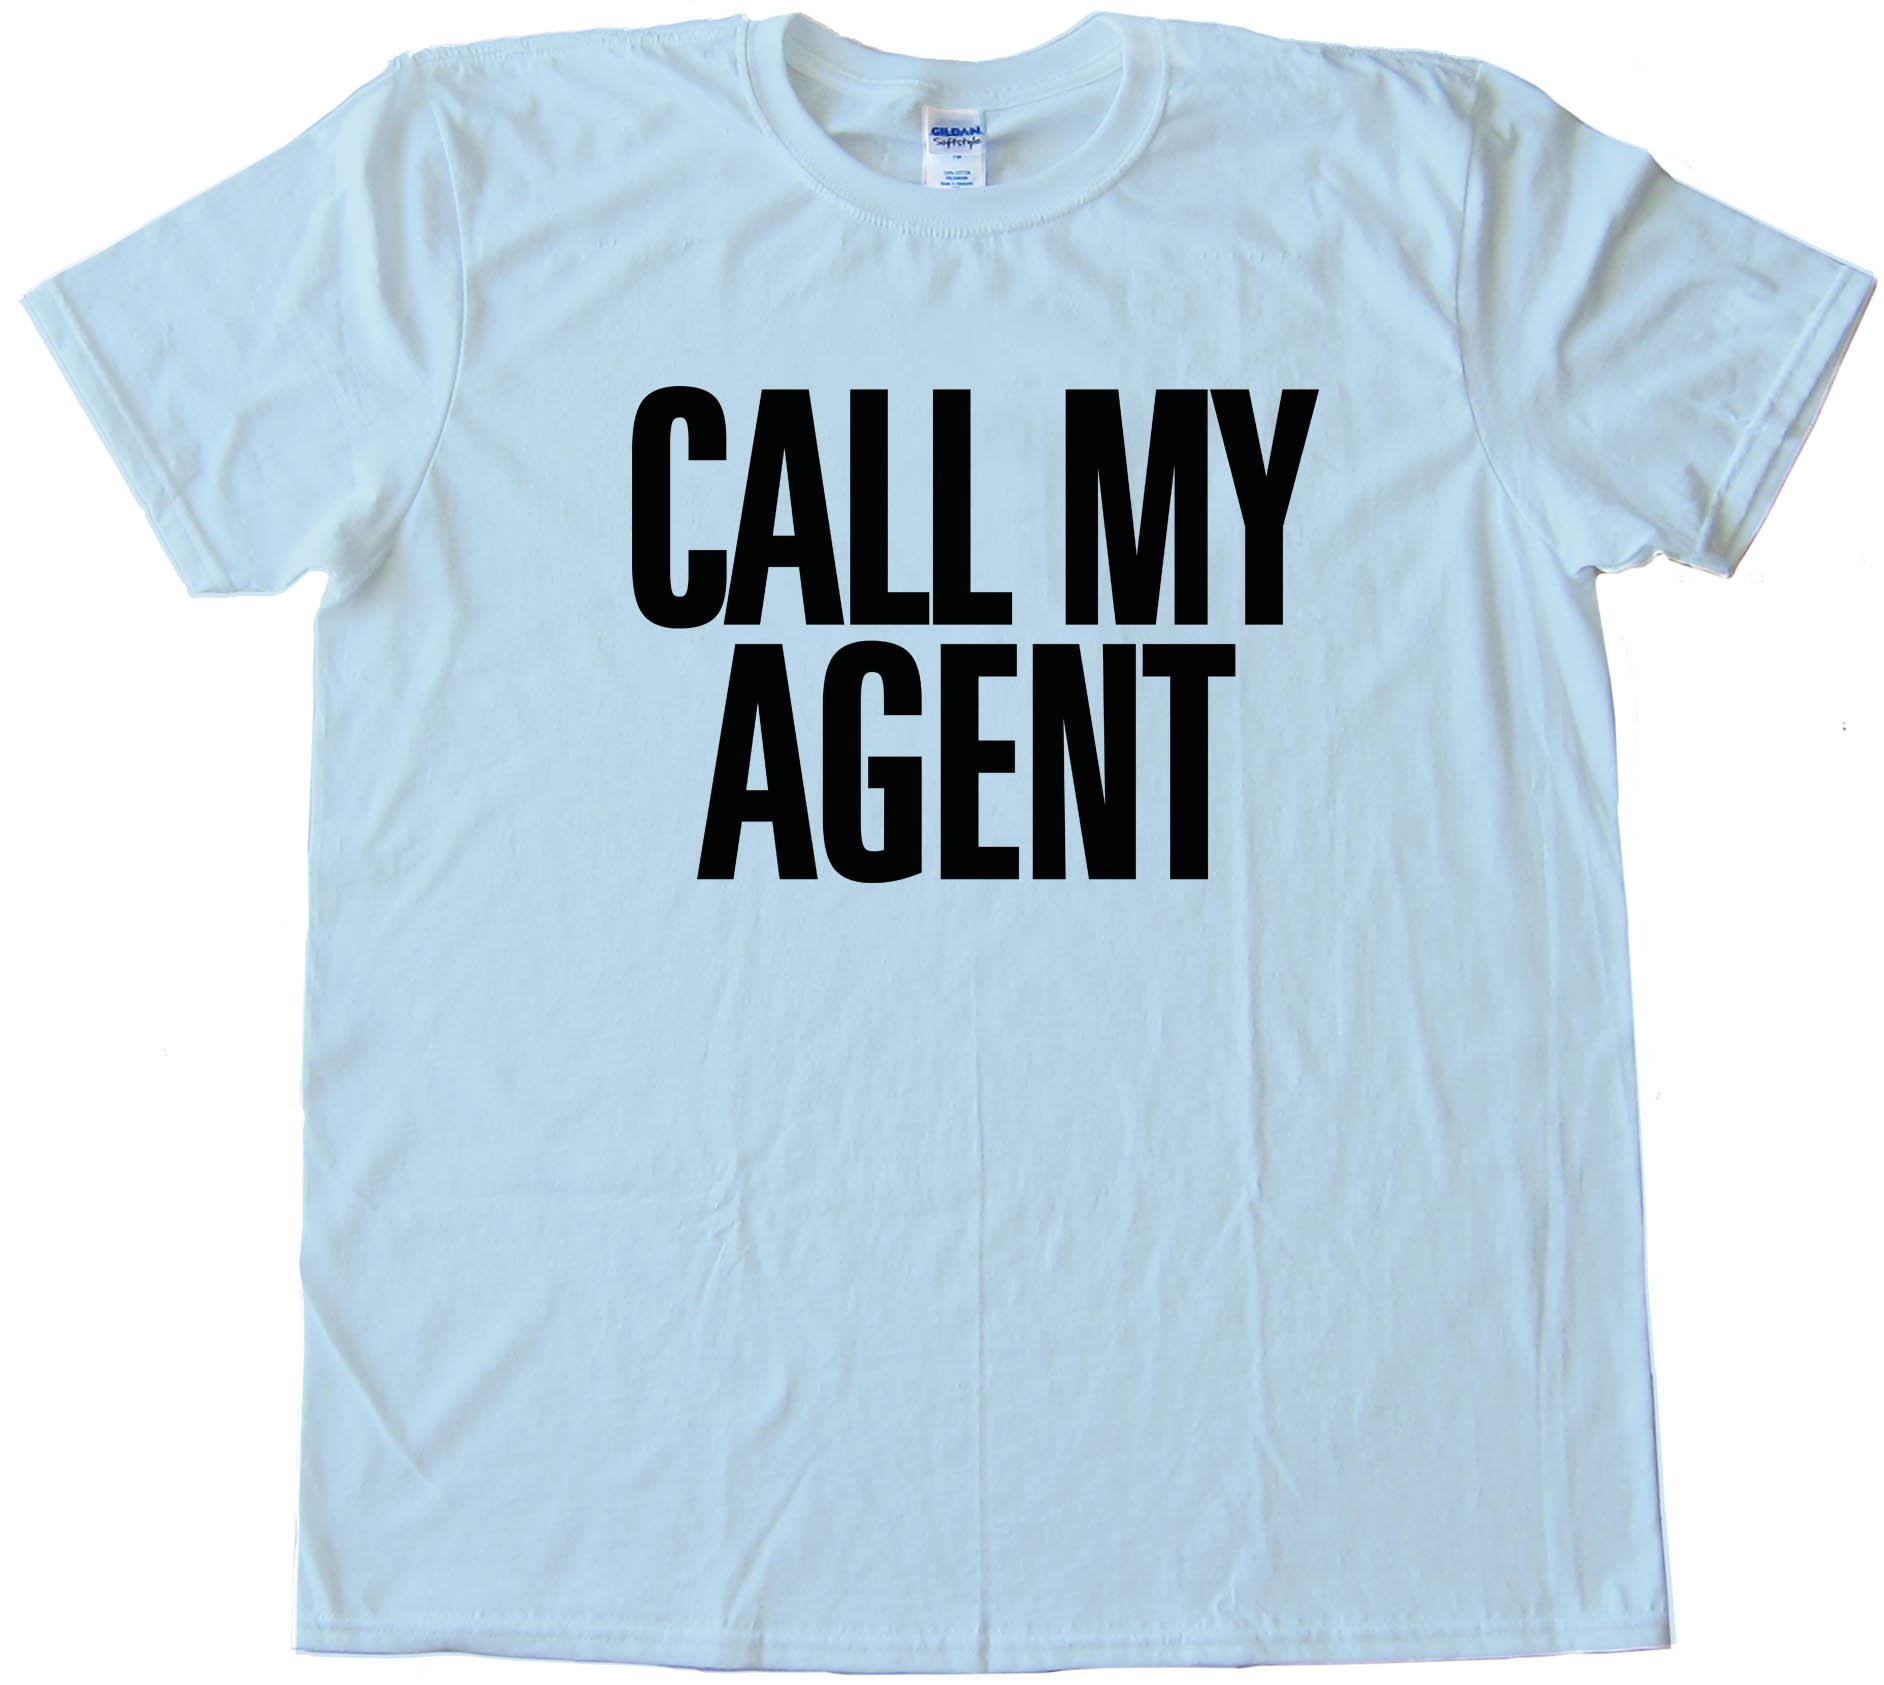 Call My Agent - Tee Shirt